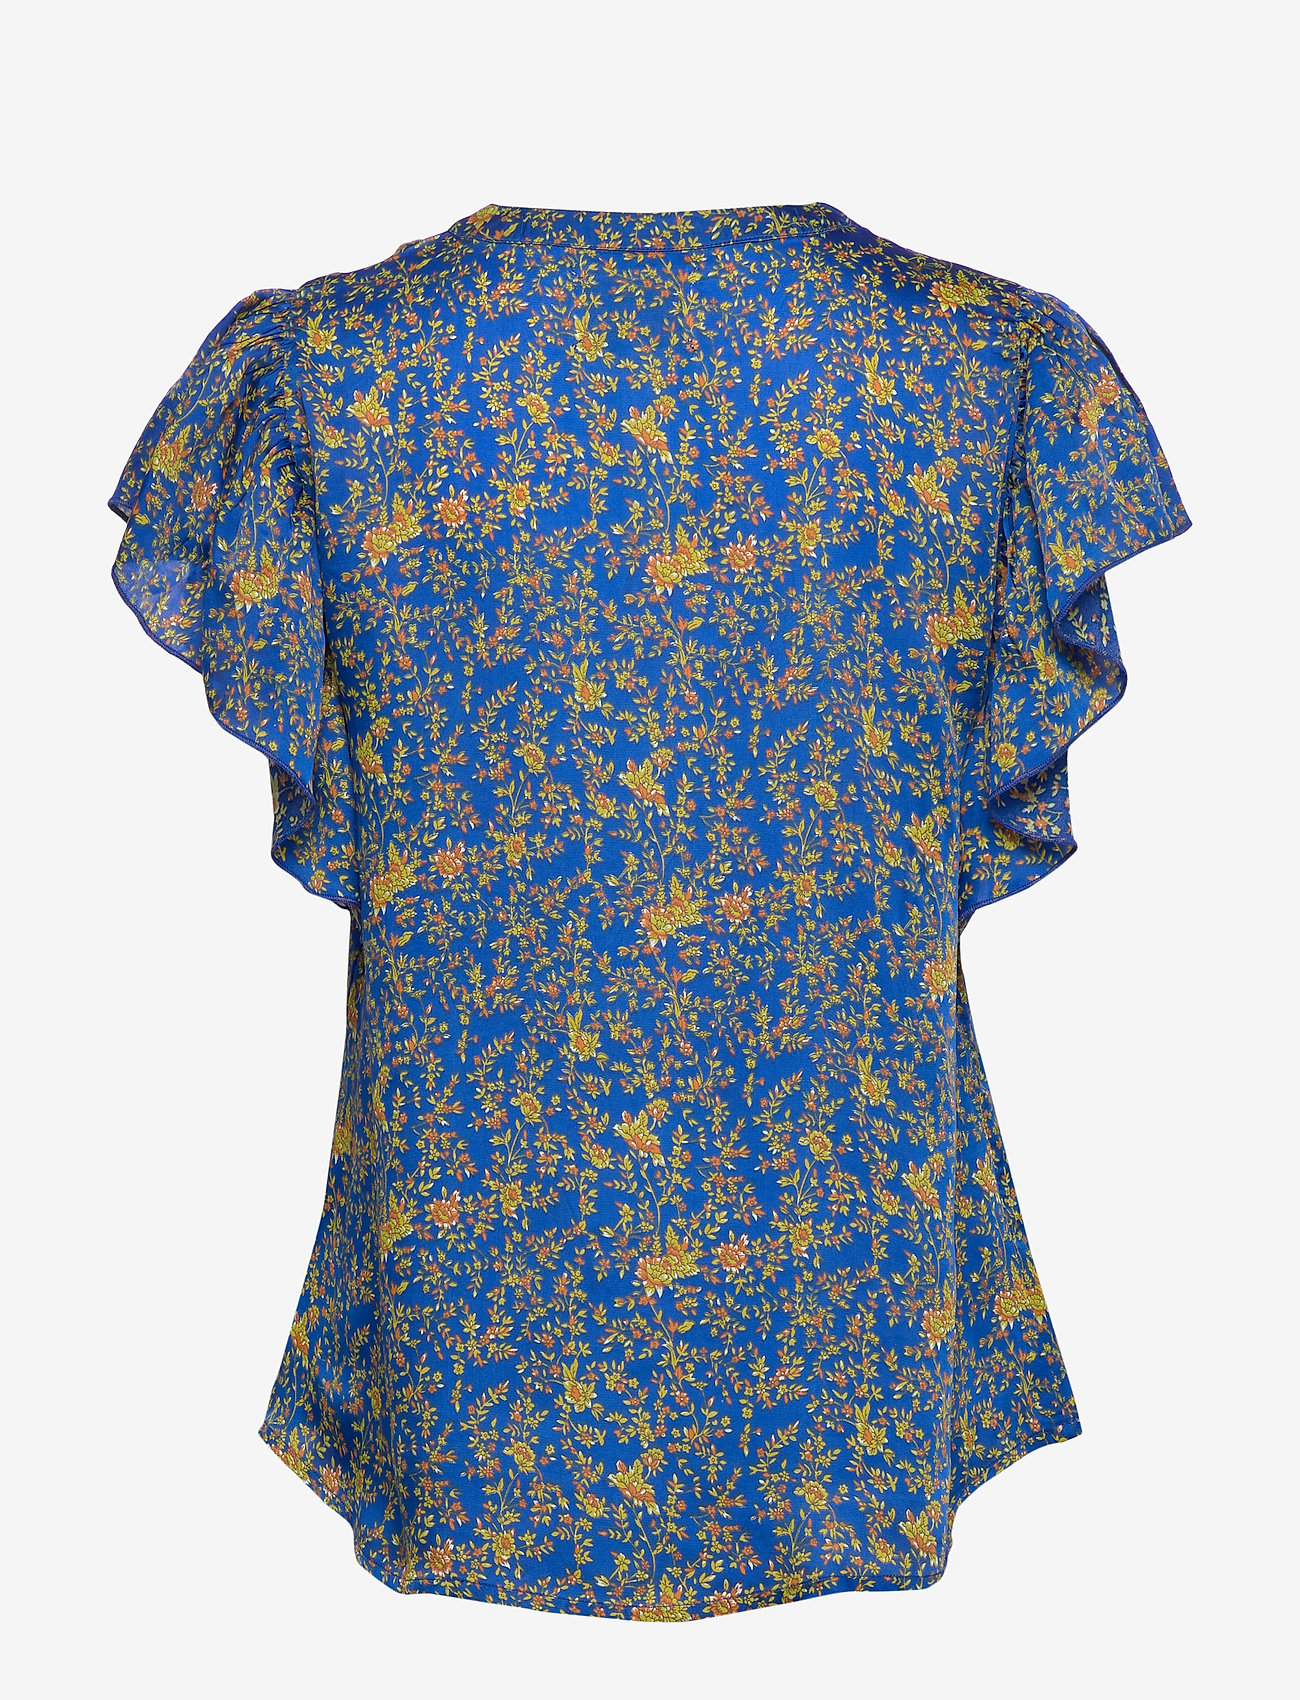 Isabel Top (Neon Blue) (806.25 kr) - Lollys Laundry